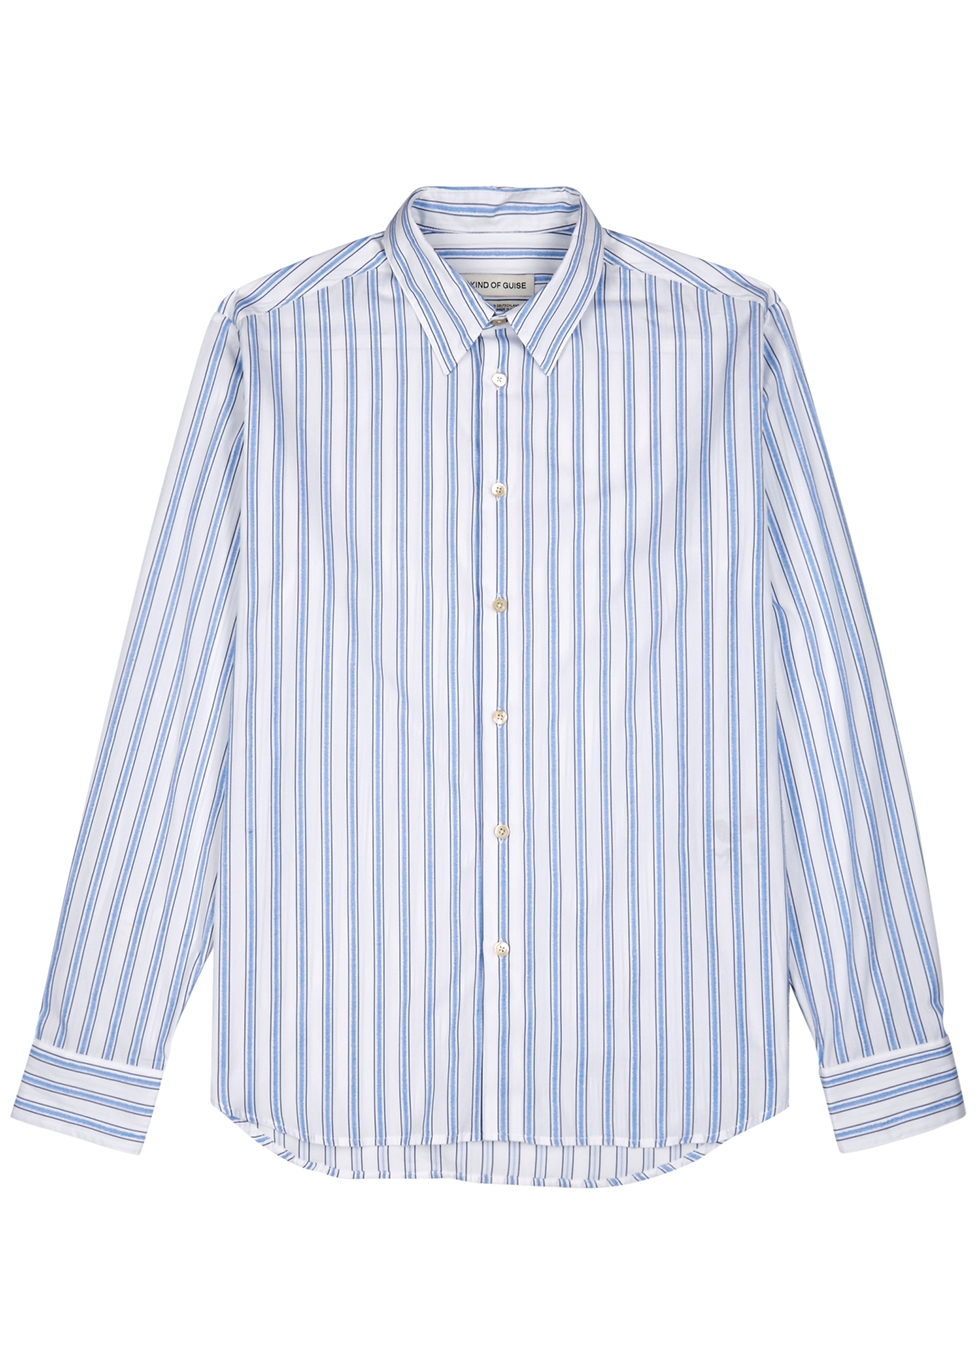 White cotton shirt - A Kind of Guise